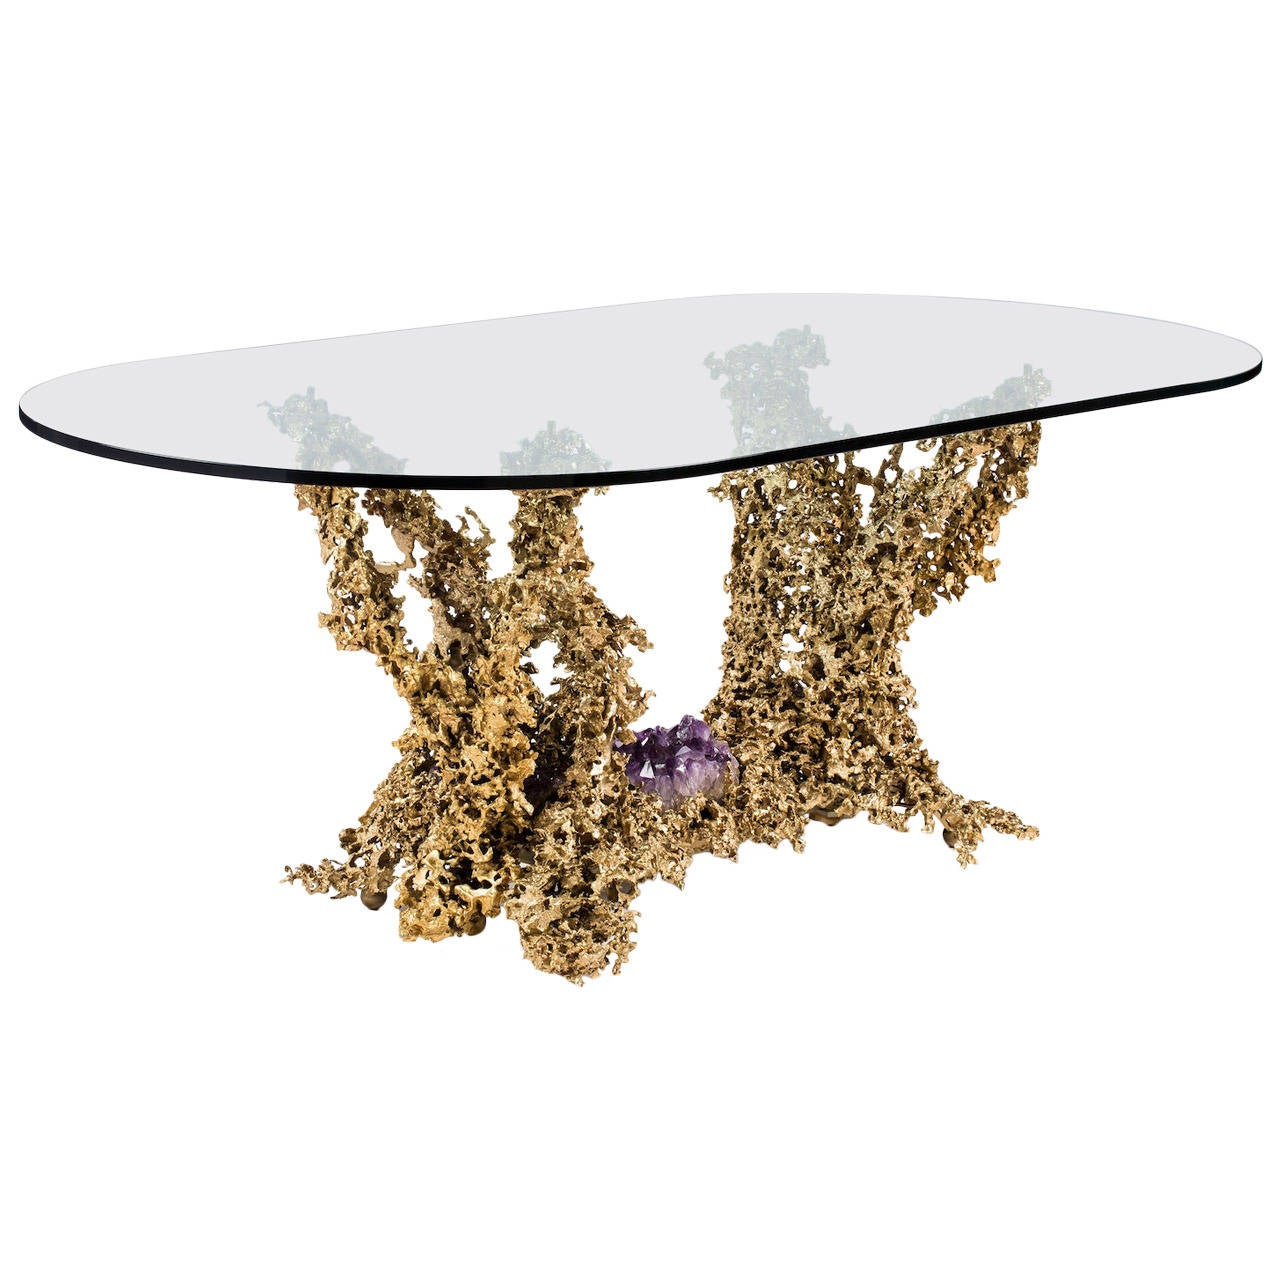 2472212 for Oval glass dining table